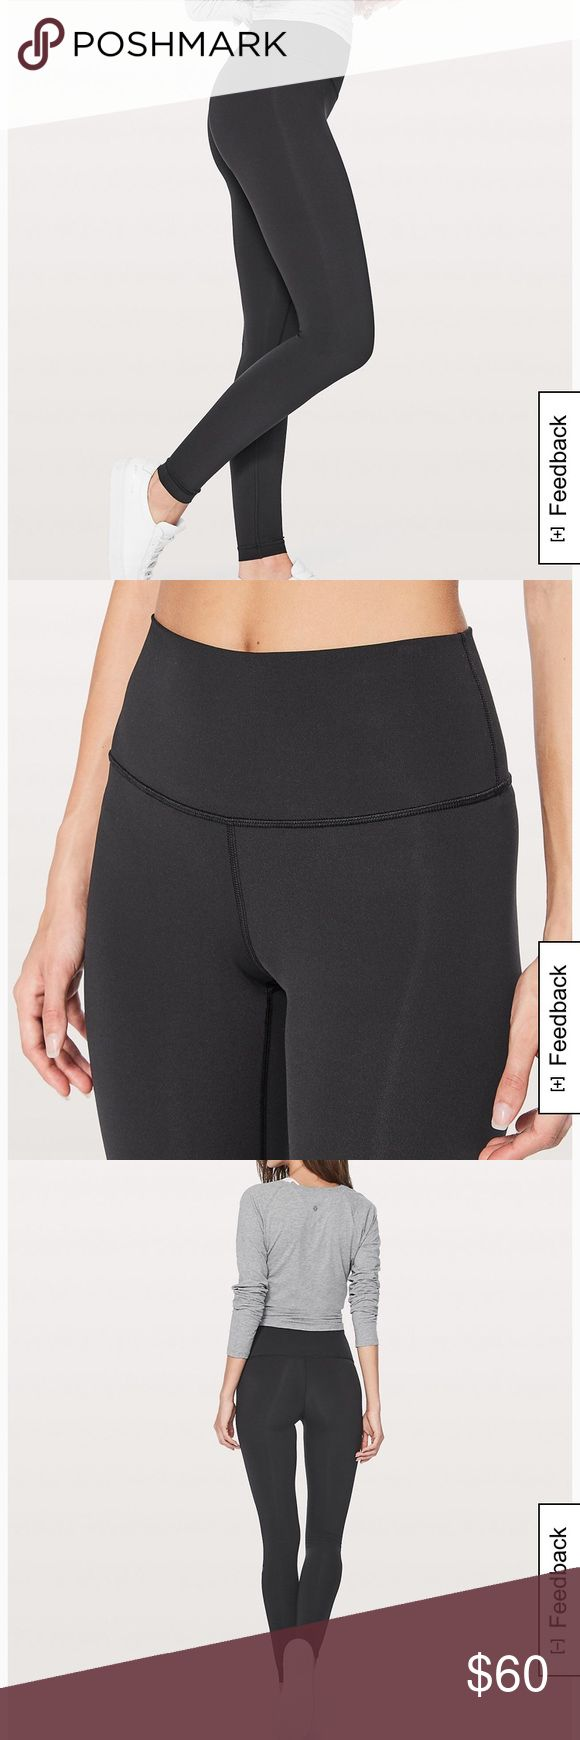 """High waisted Lululemon leggings High waisted leggings in black. Washed a few times but perfect condition- no holes or tears. Inside tag shows only signs of wear. Top hits right above belly button and legs are long- I believe 29"""" (past ankles on me I am 5'2). Just a bit too big on me! lululemon athletica Pants Leggings"""